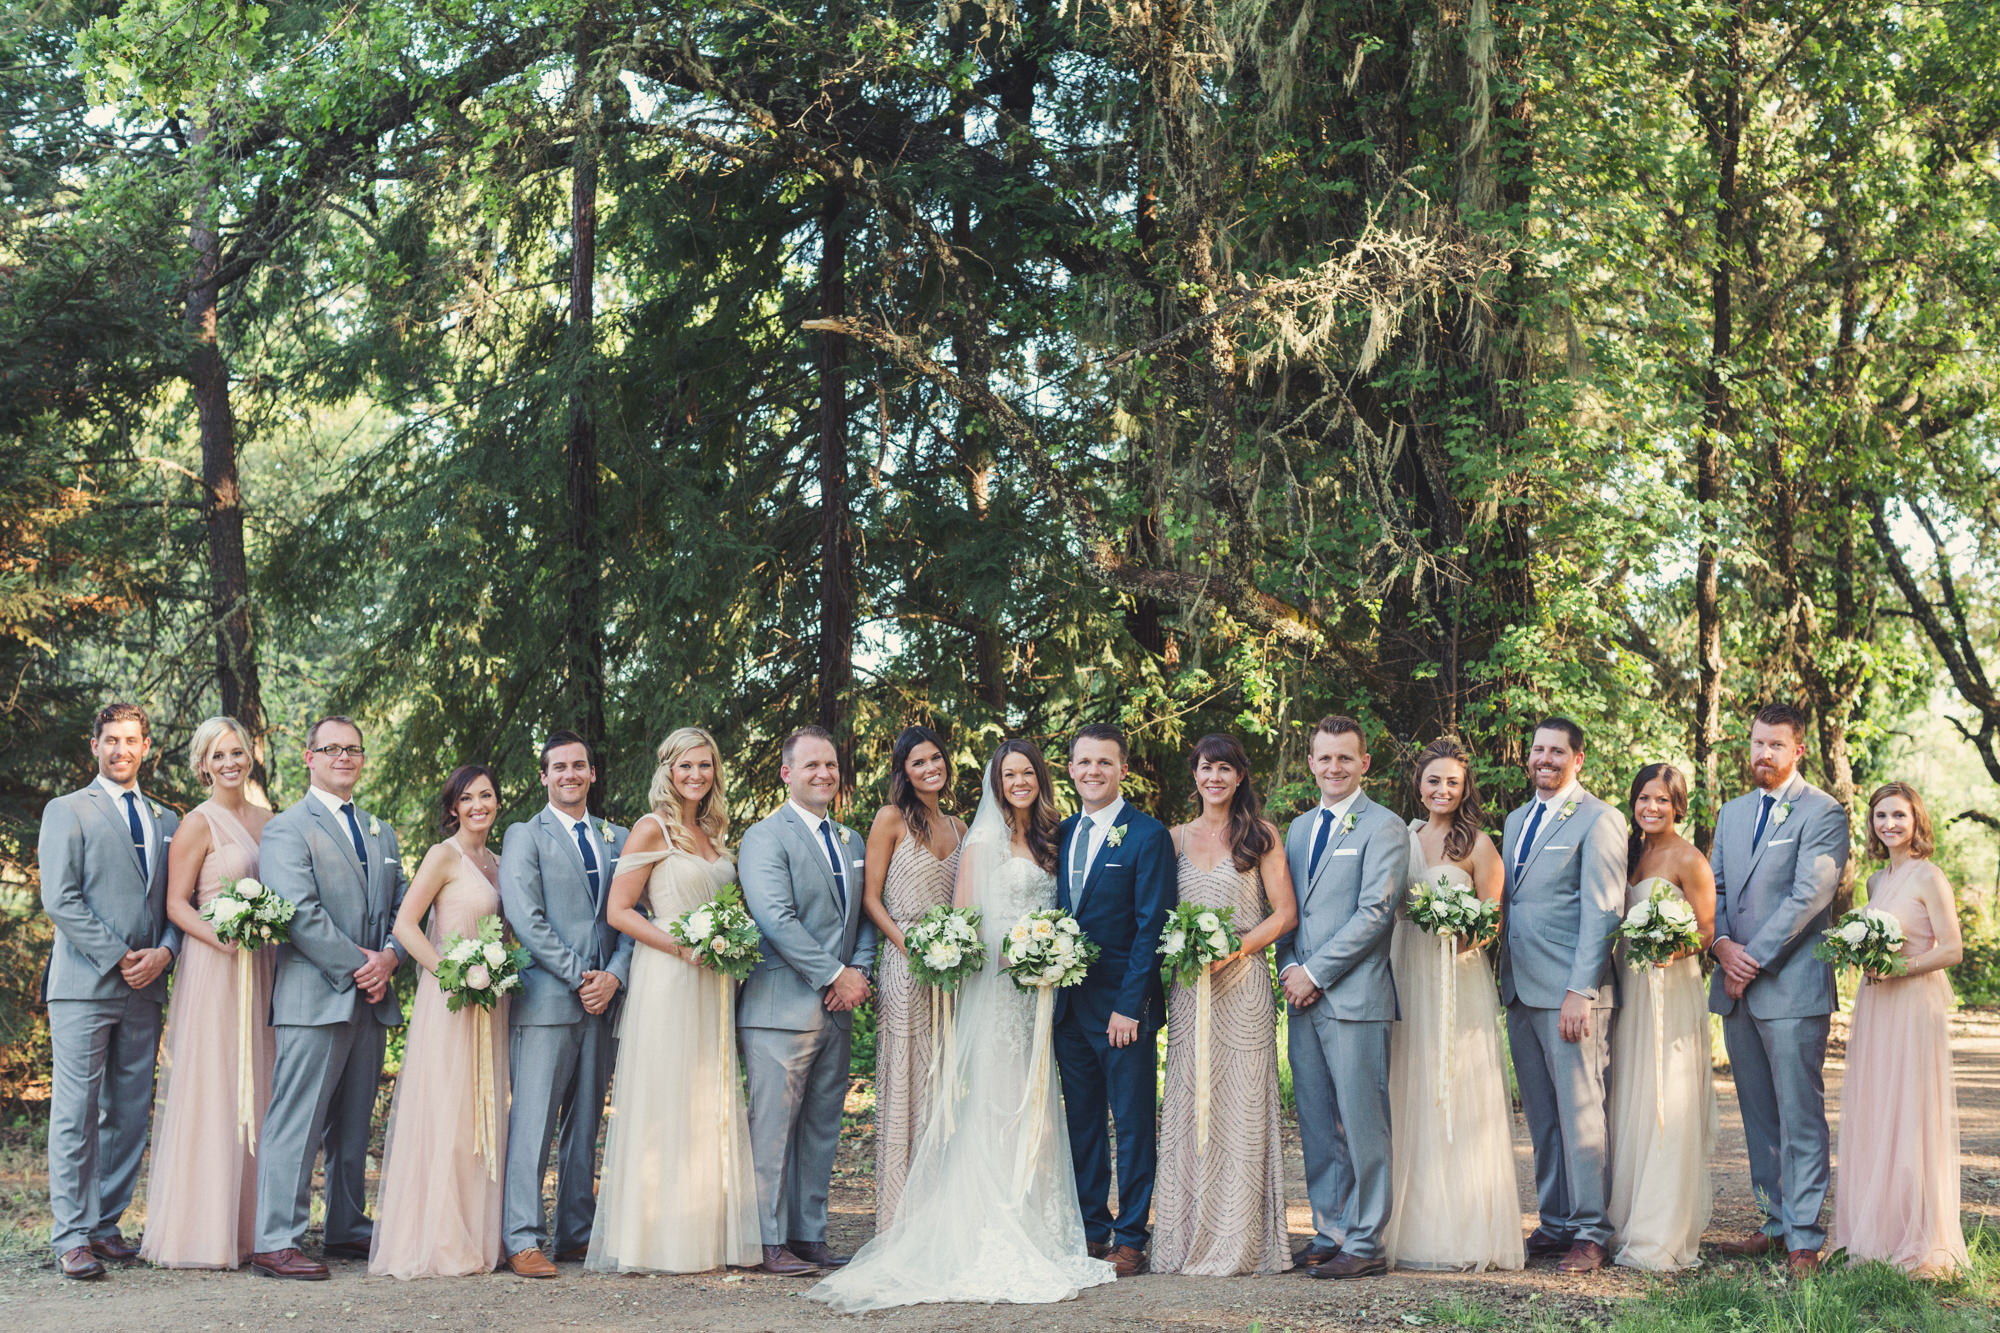 Wedding in Campovida @Anne-Claire Brun 84